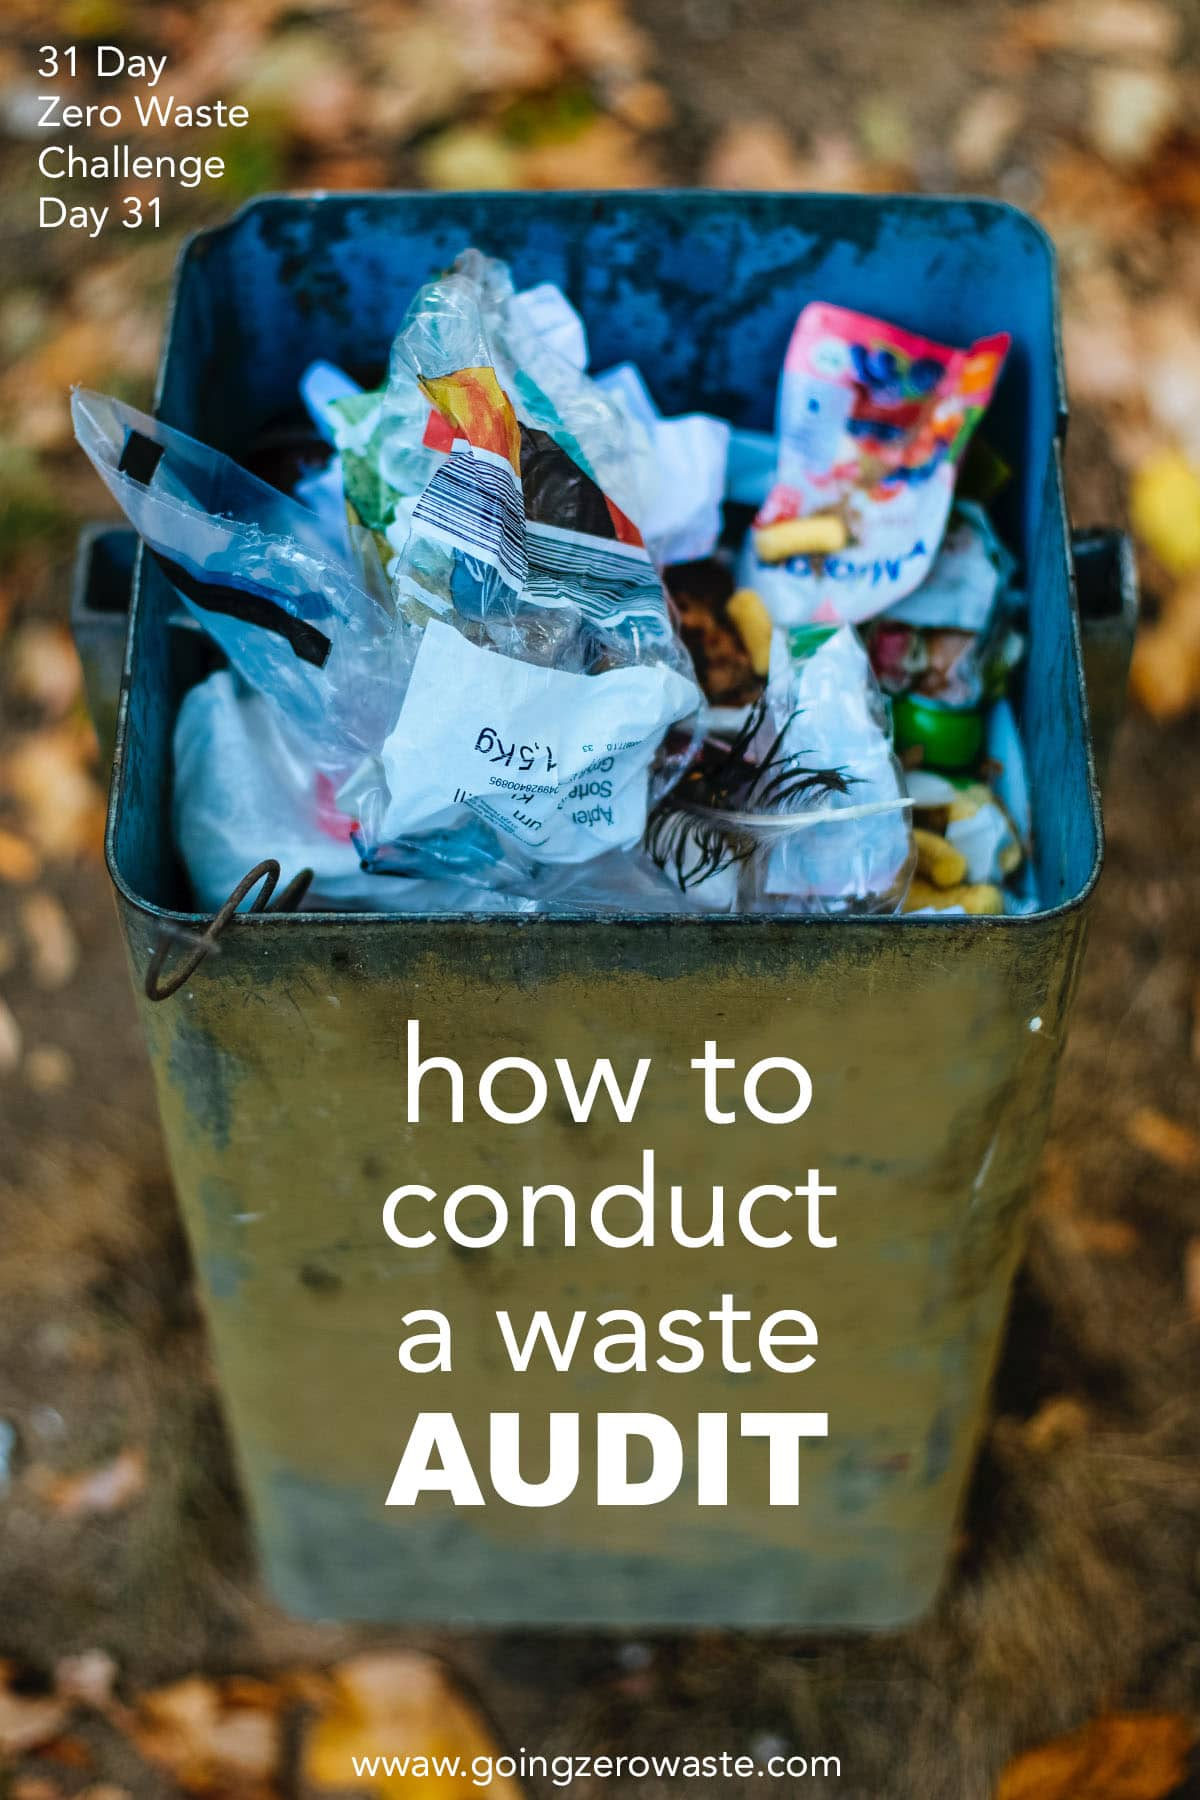 How to Perform a Trash Audit - Day 31 of the Zero Waste Challenge